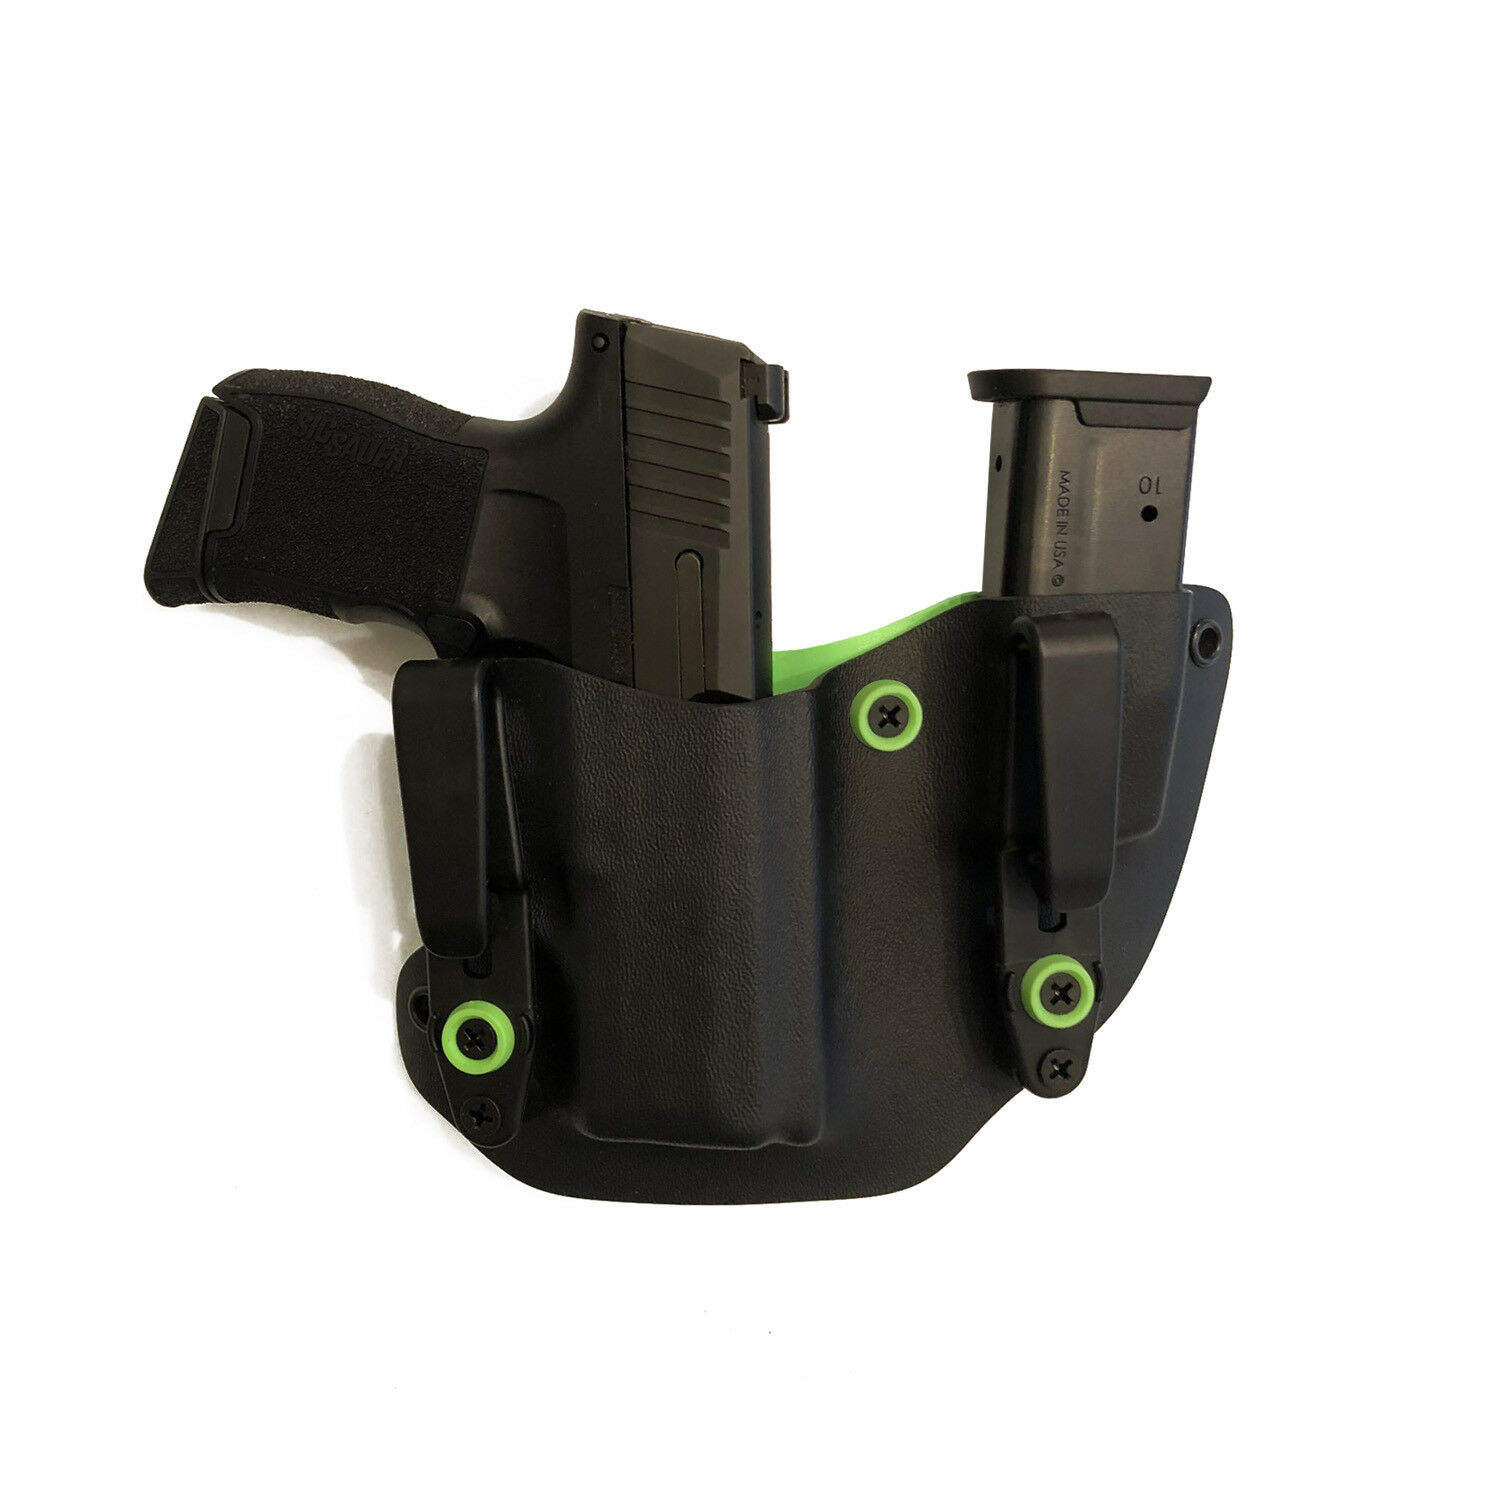 Fits S&W Shield 9 40 IWB Kydex Concealment Gun Mag Holster Combo ZOMBIE GREEN